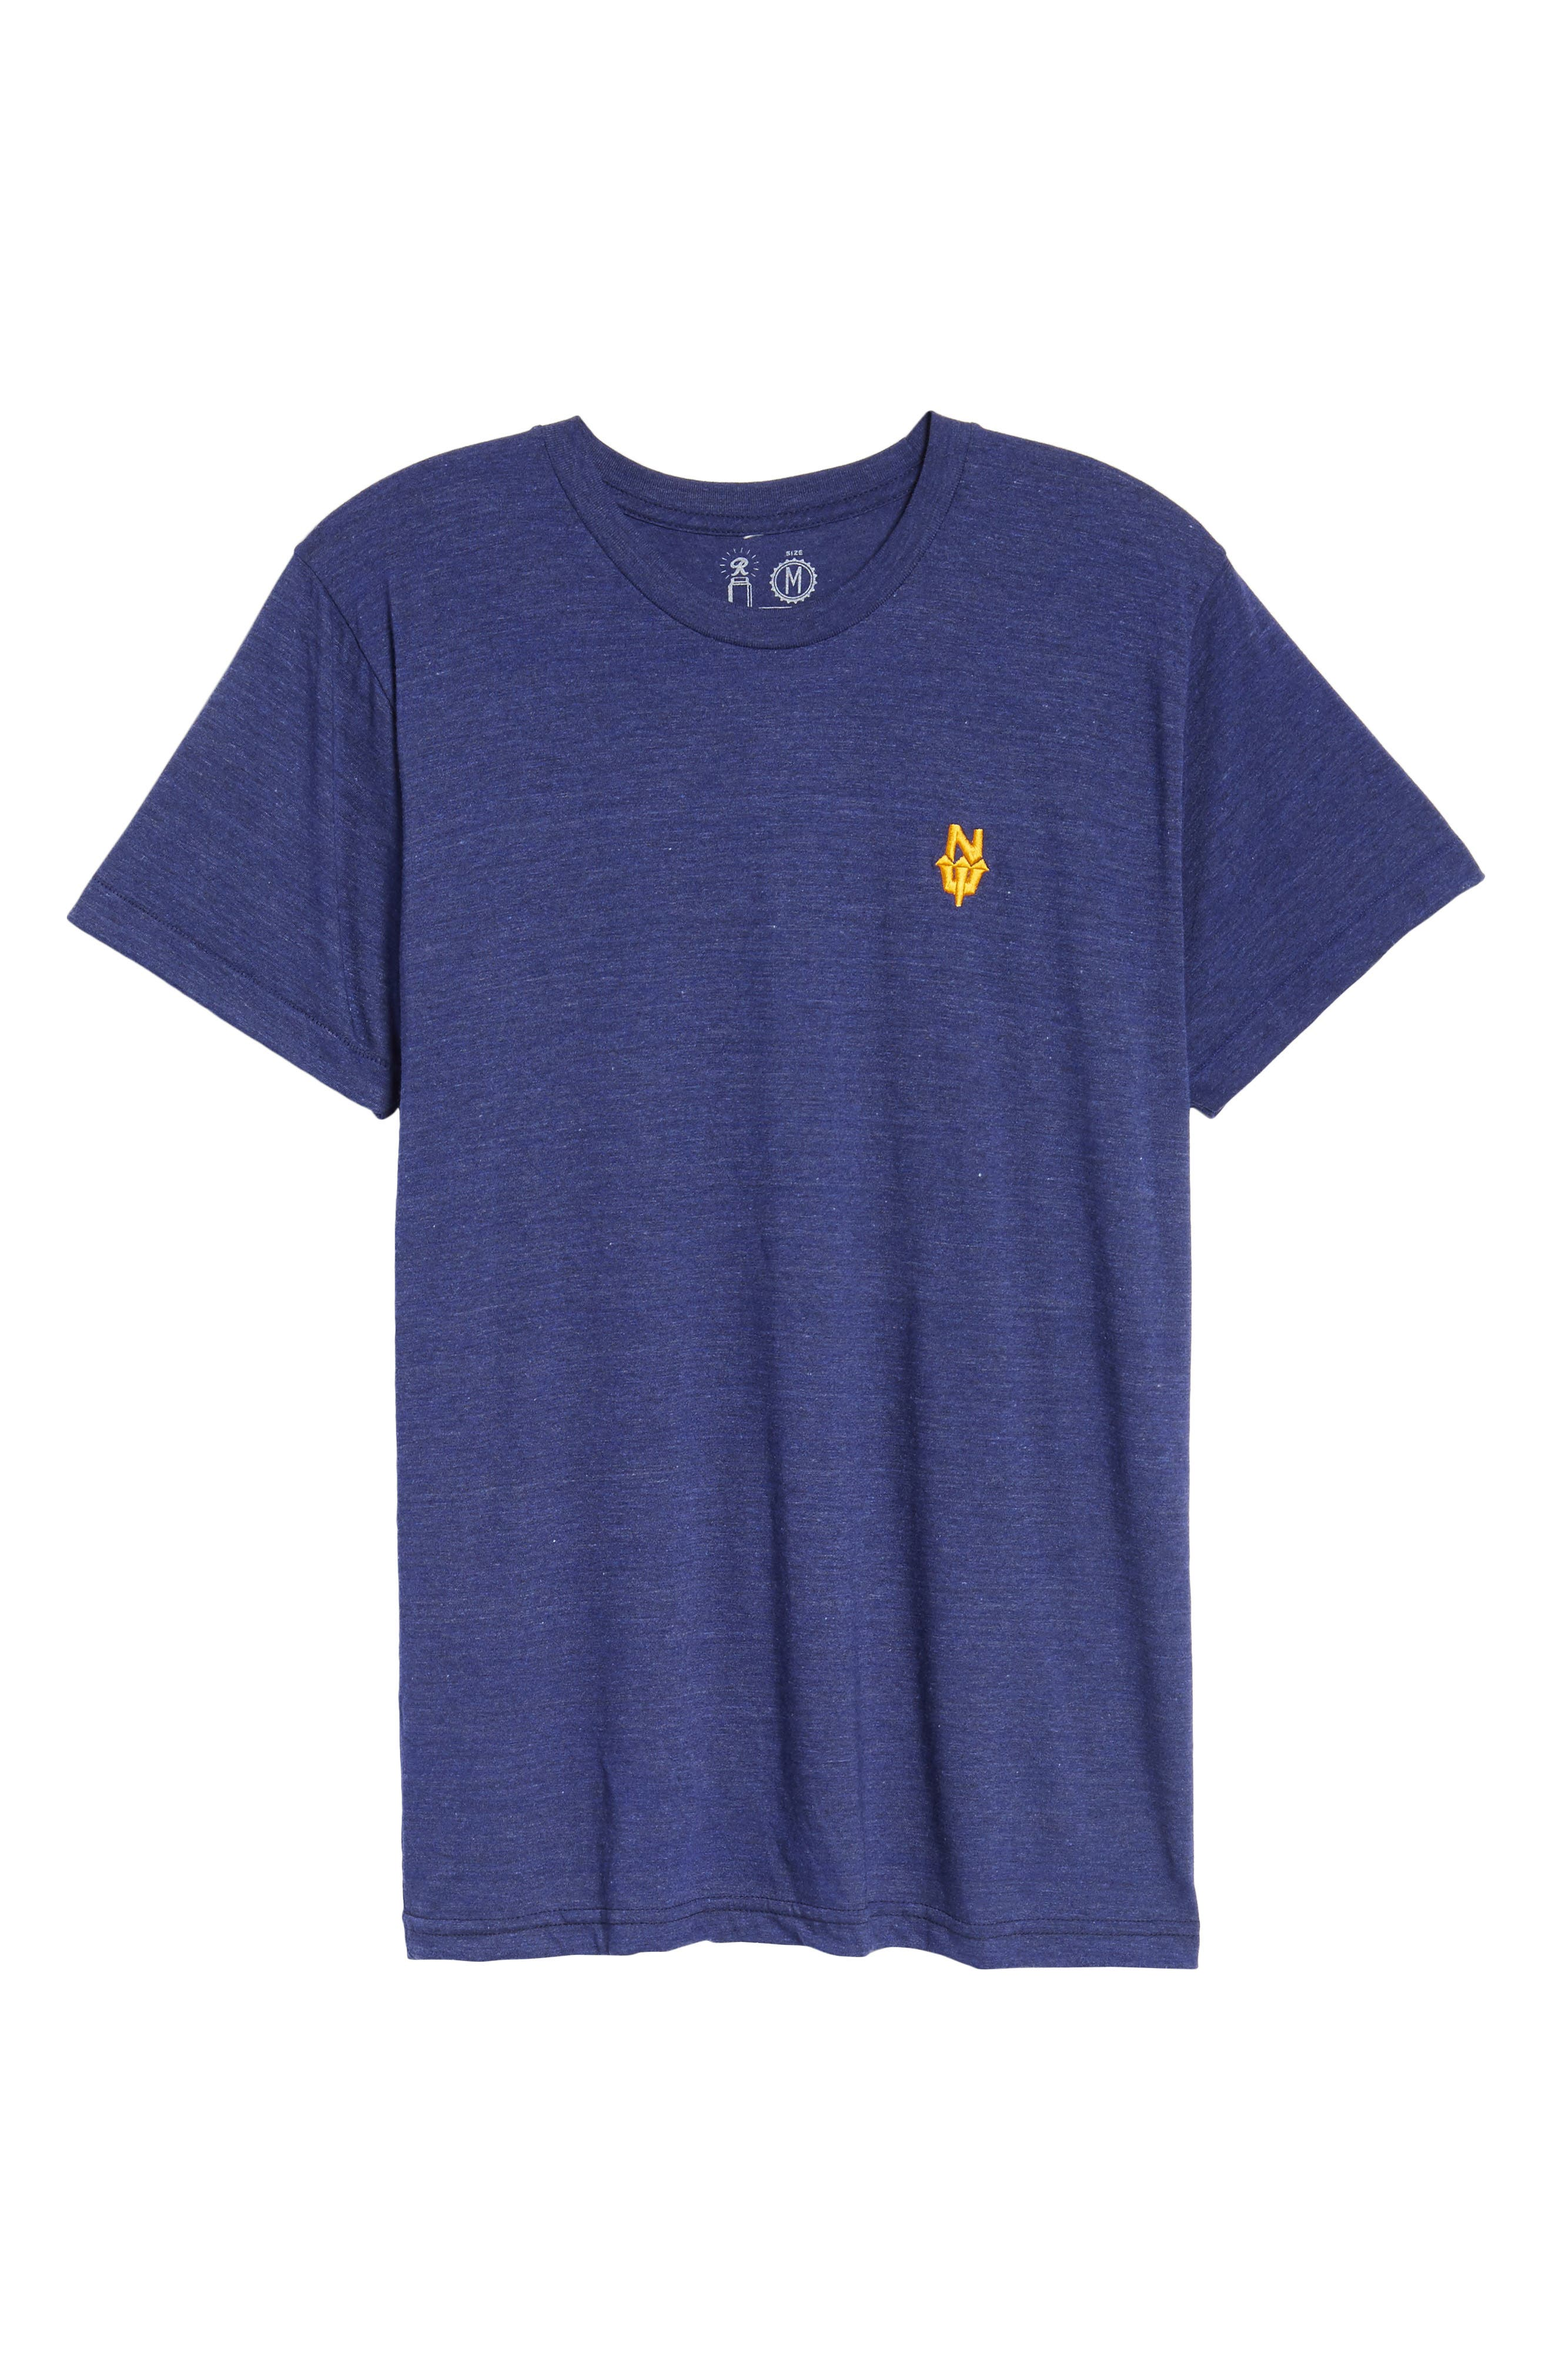 NW Trident Embroidered T-Shirt,                             Alternate thumbnail 18, color,